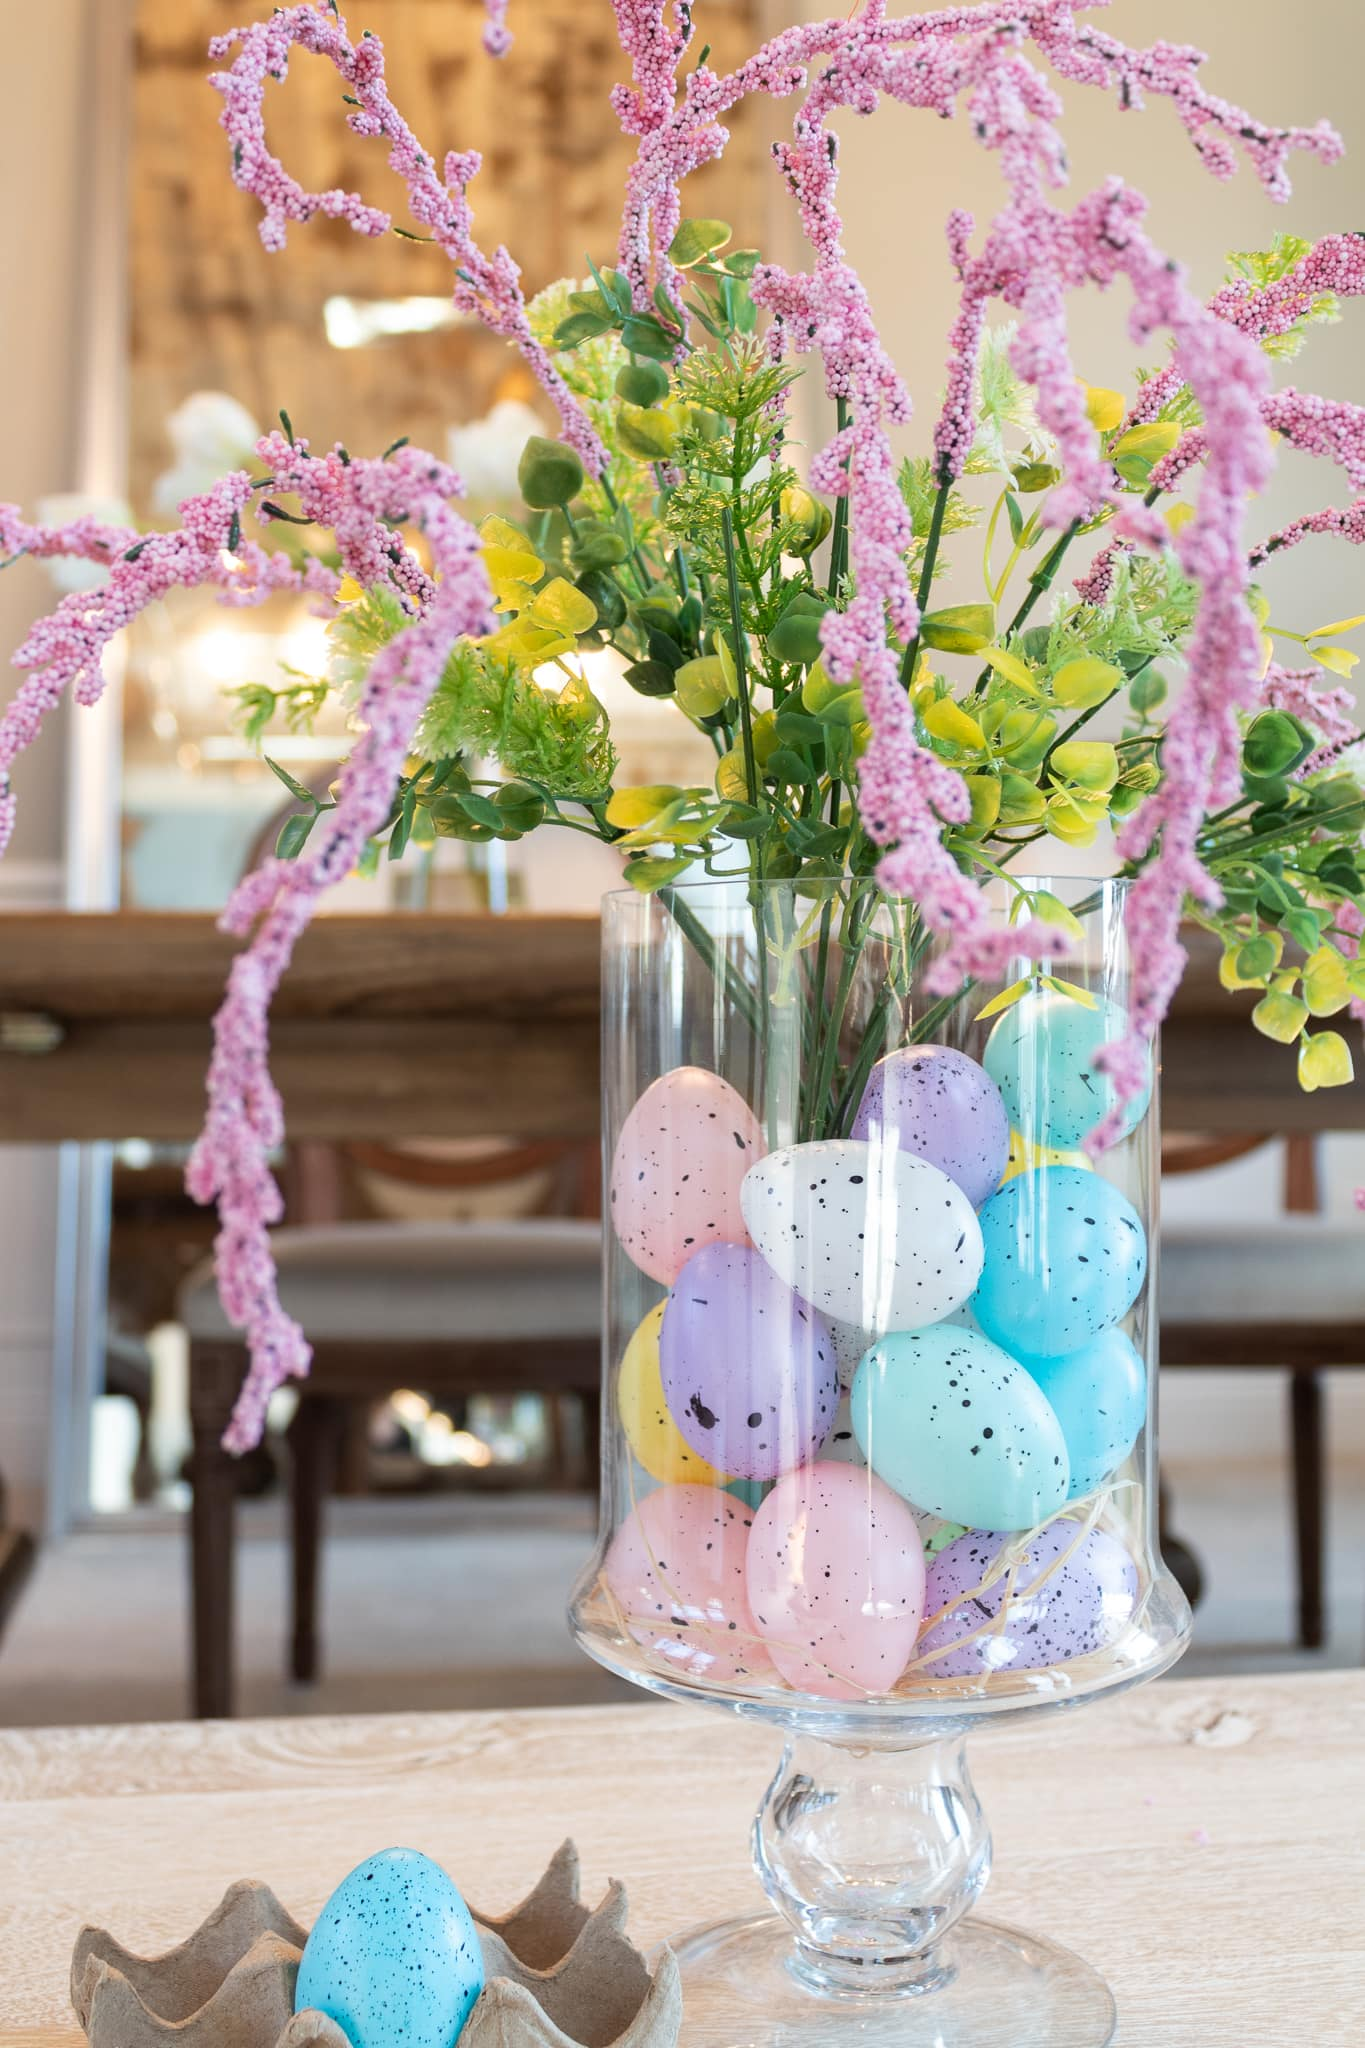 Easter eggs and flowers in a vase